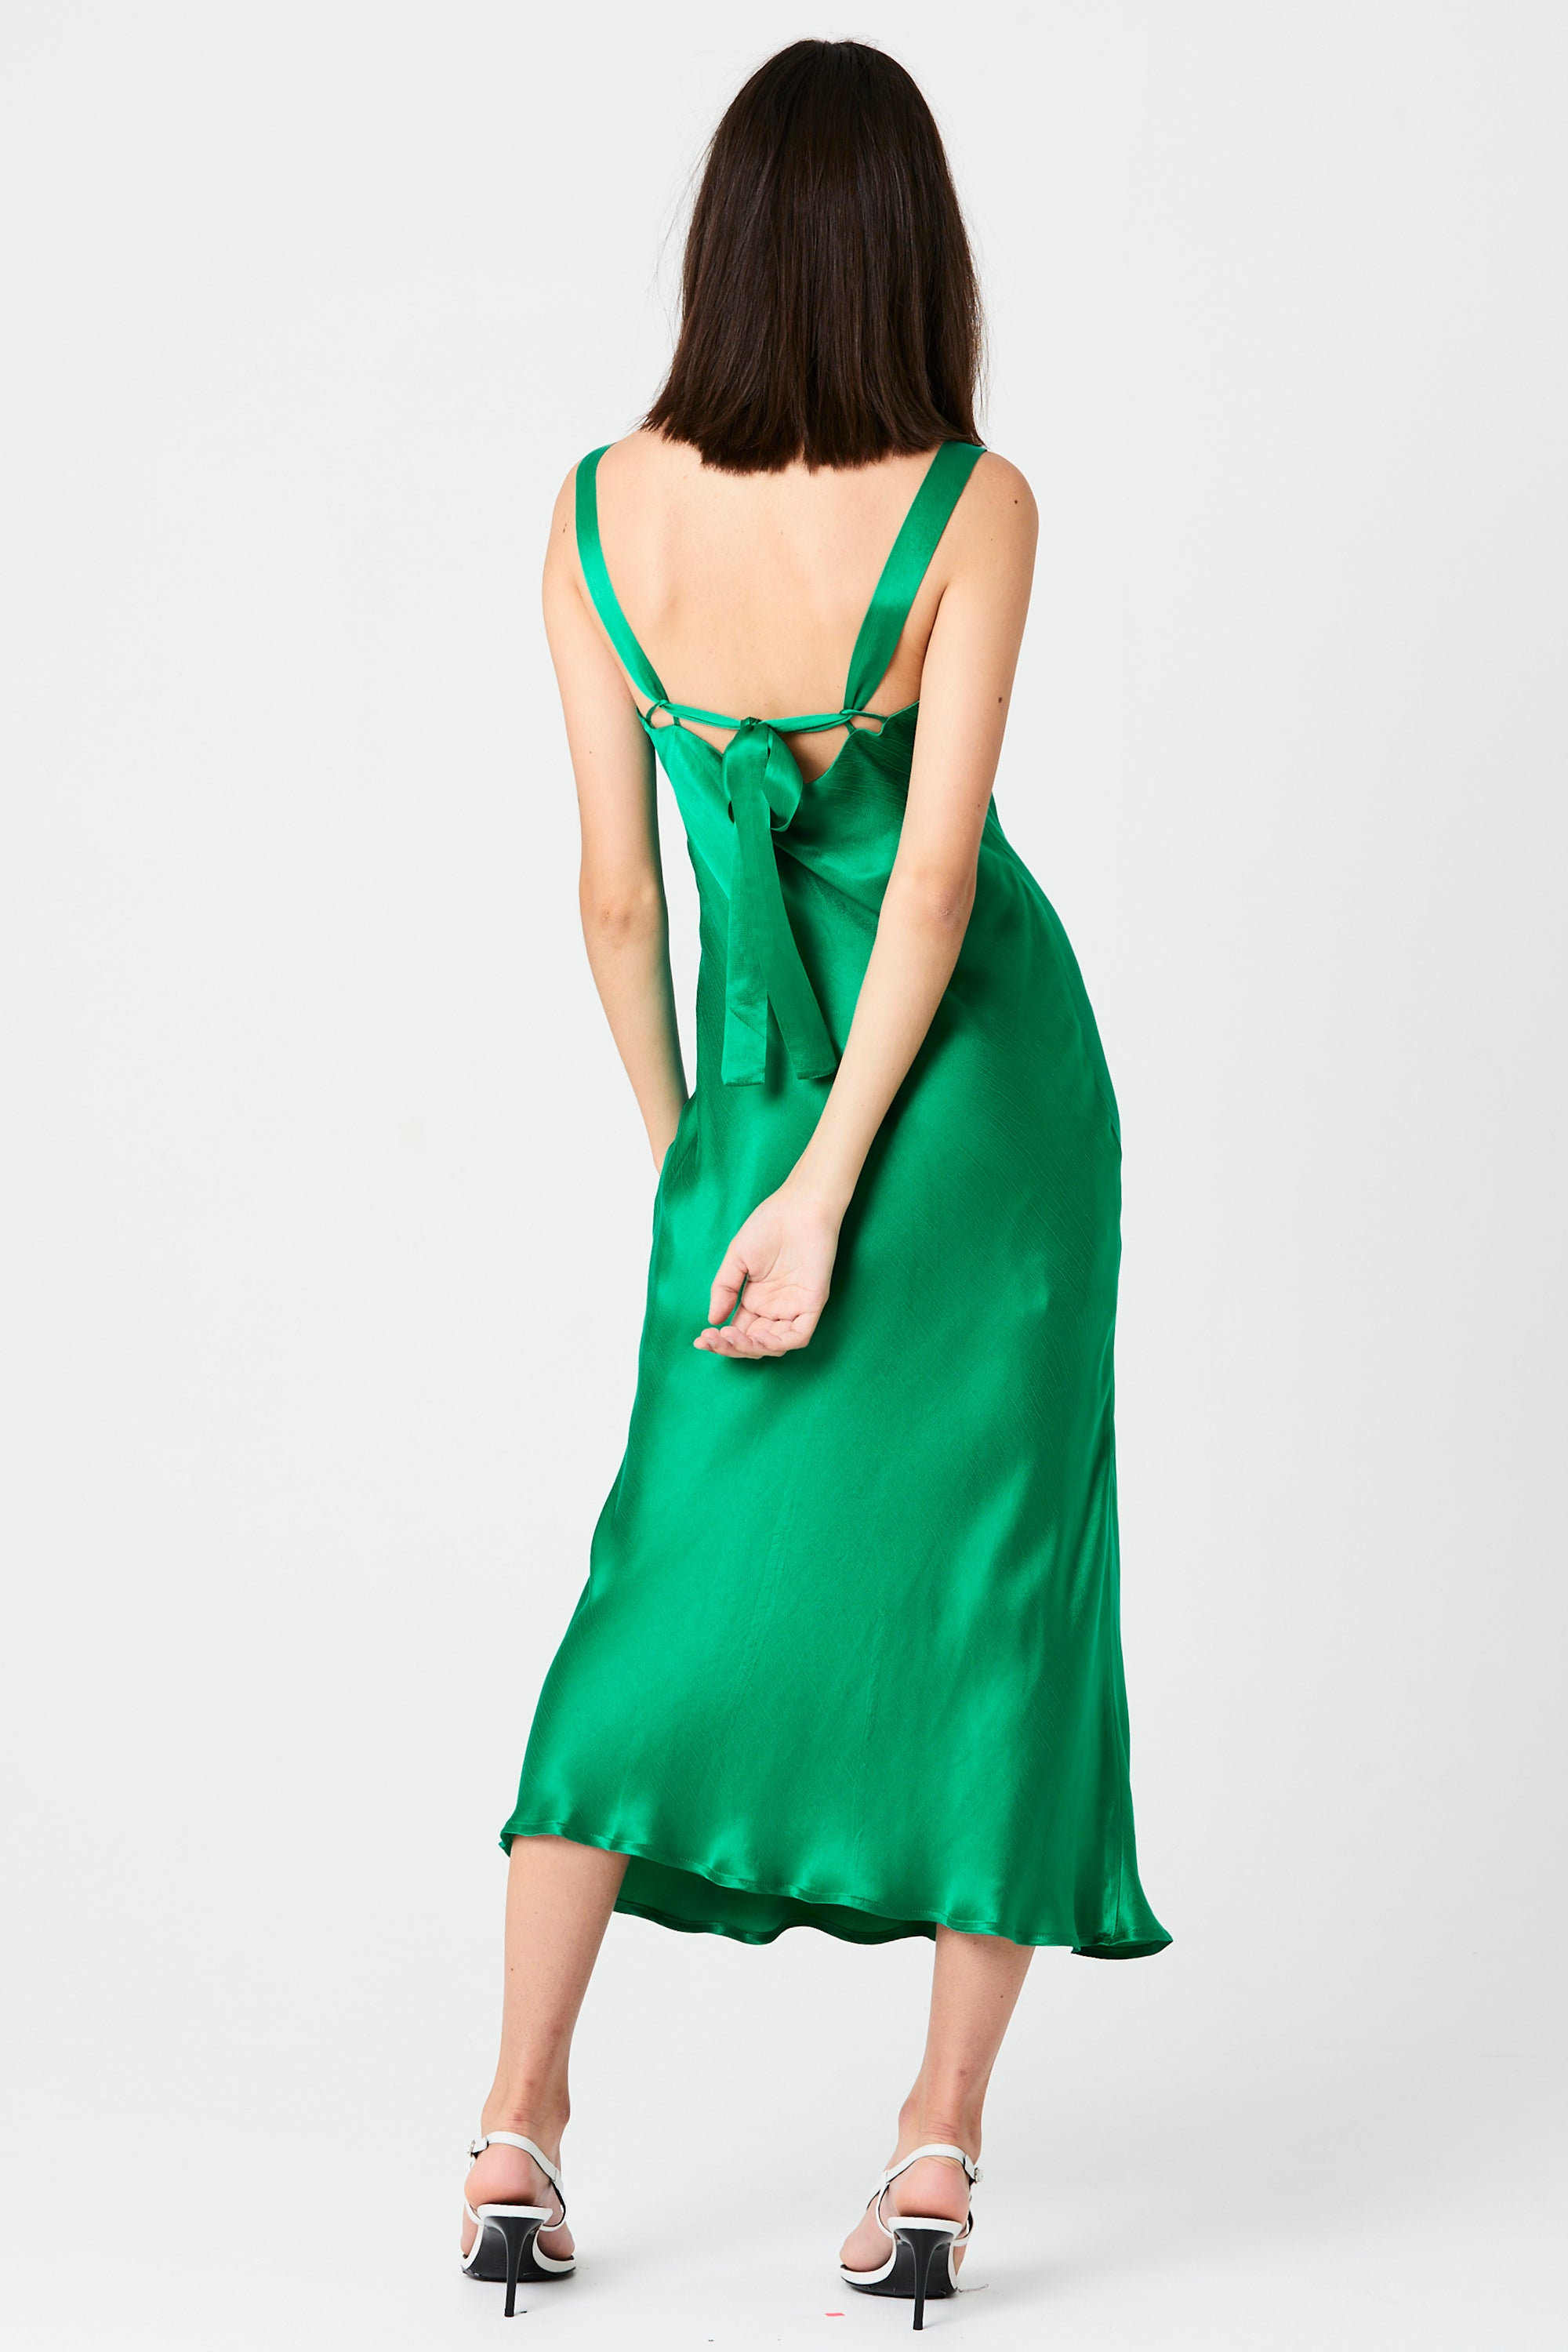 INTRIGUE BIAS SLIP DRESS | EMERALD